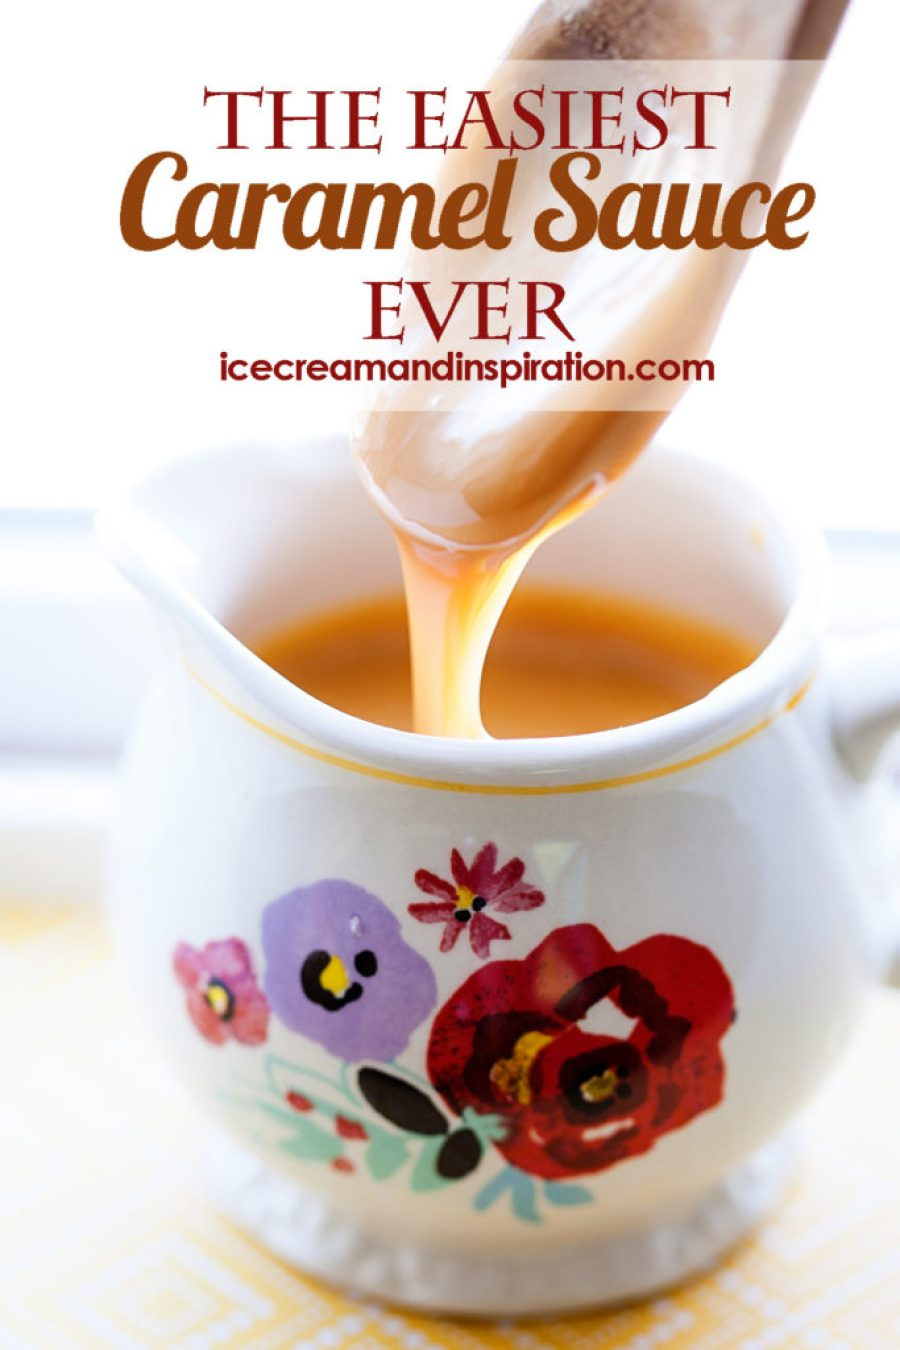 Can you boil water? Good! Then you can make this caramel sauce. All you need is a can of sweetened condensed milk and a little know-how. Caramel sauce recipe, home made caramel sauce